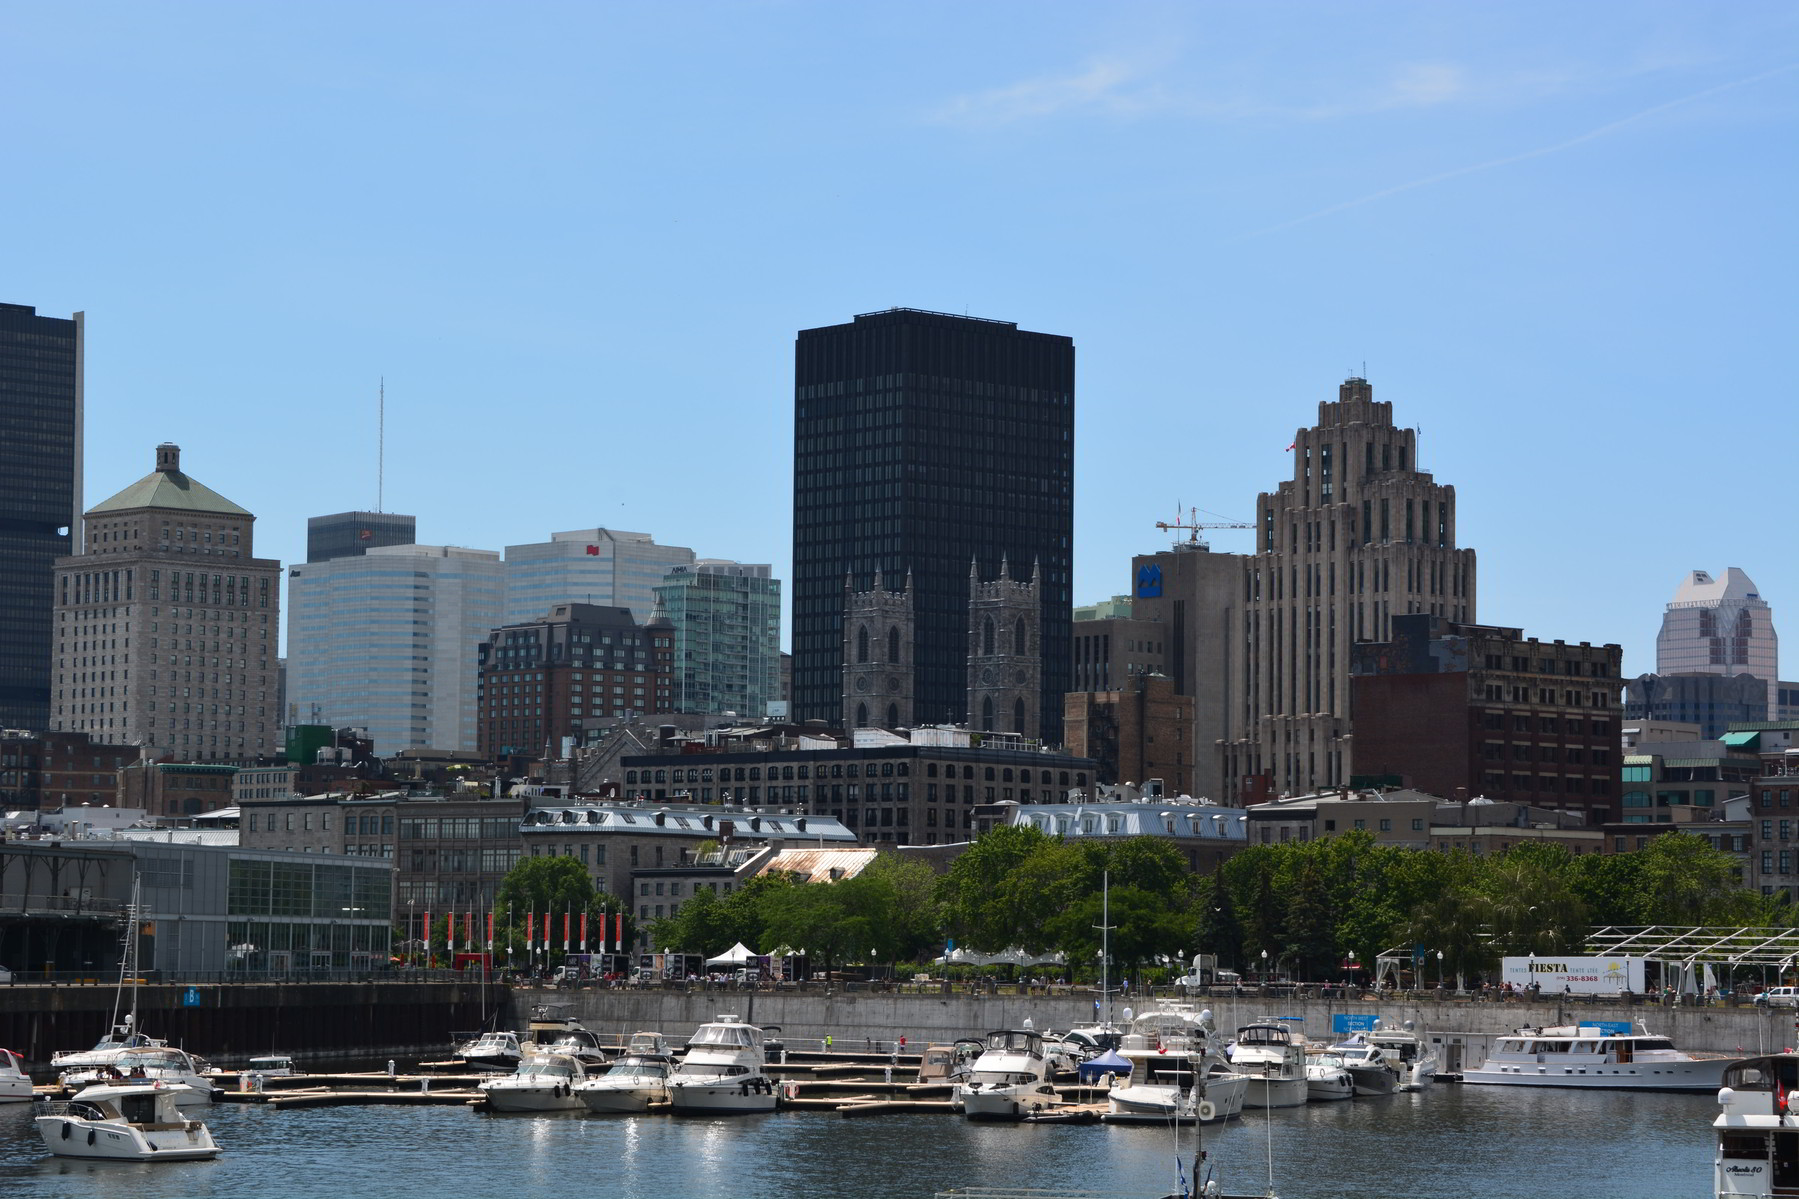 Downtown Montreal, as seen from Bonsecours Basin Park